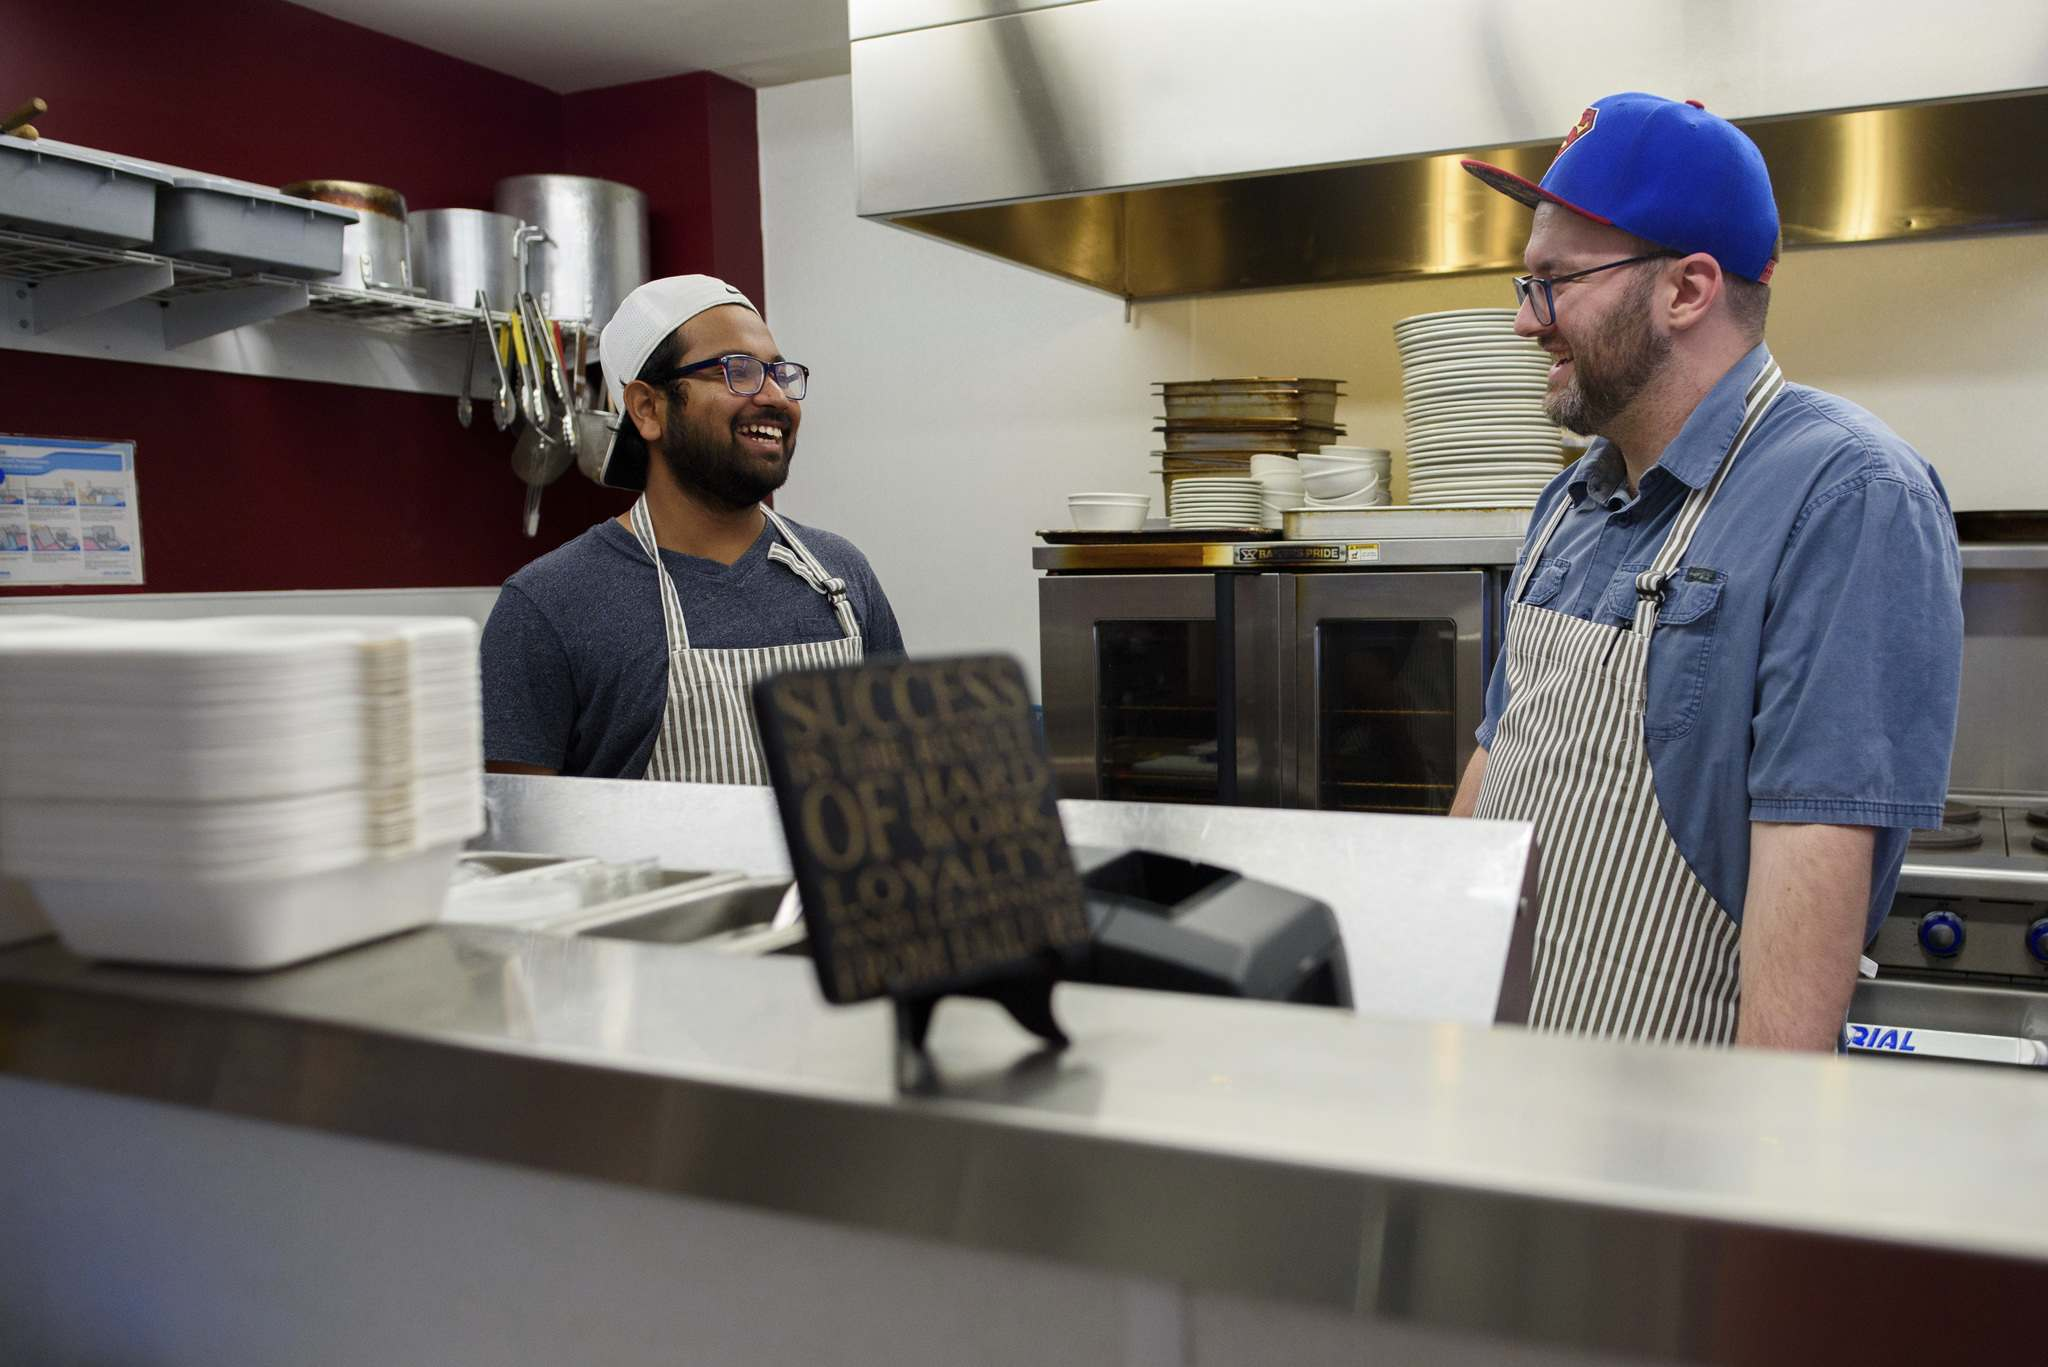 Nick Graumann (right), owner of Nick's on Broadway, shares a laugh with Sarifal Ridoy in the kitchen. (Jesse Boily / Winnipeg Free Press)</p>